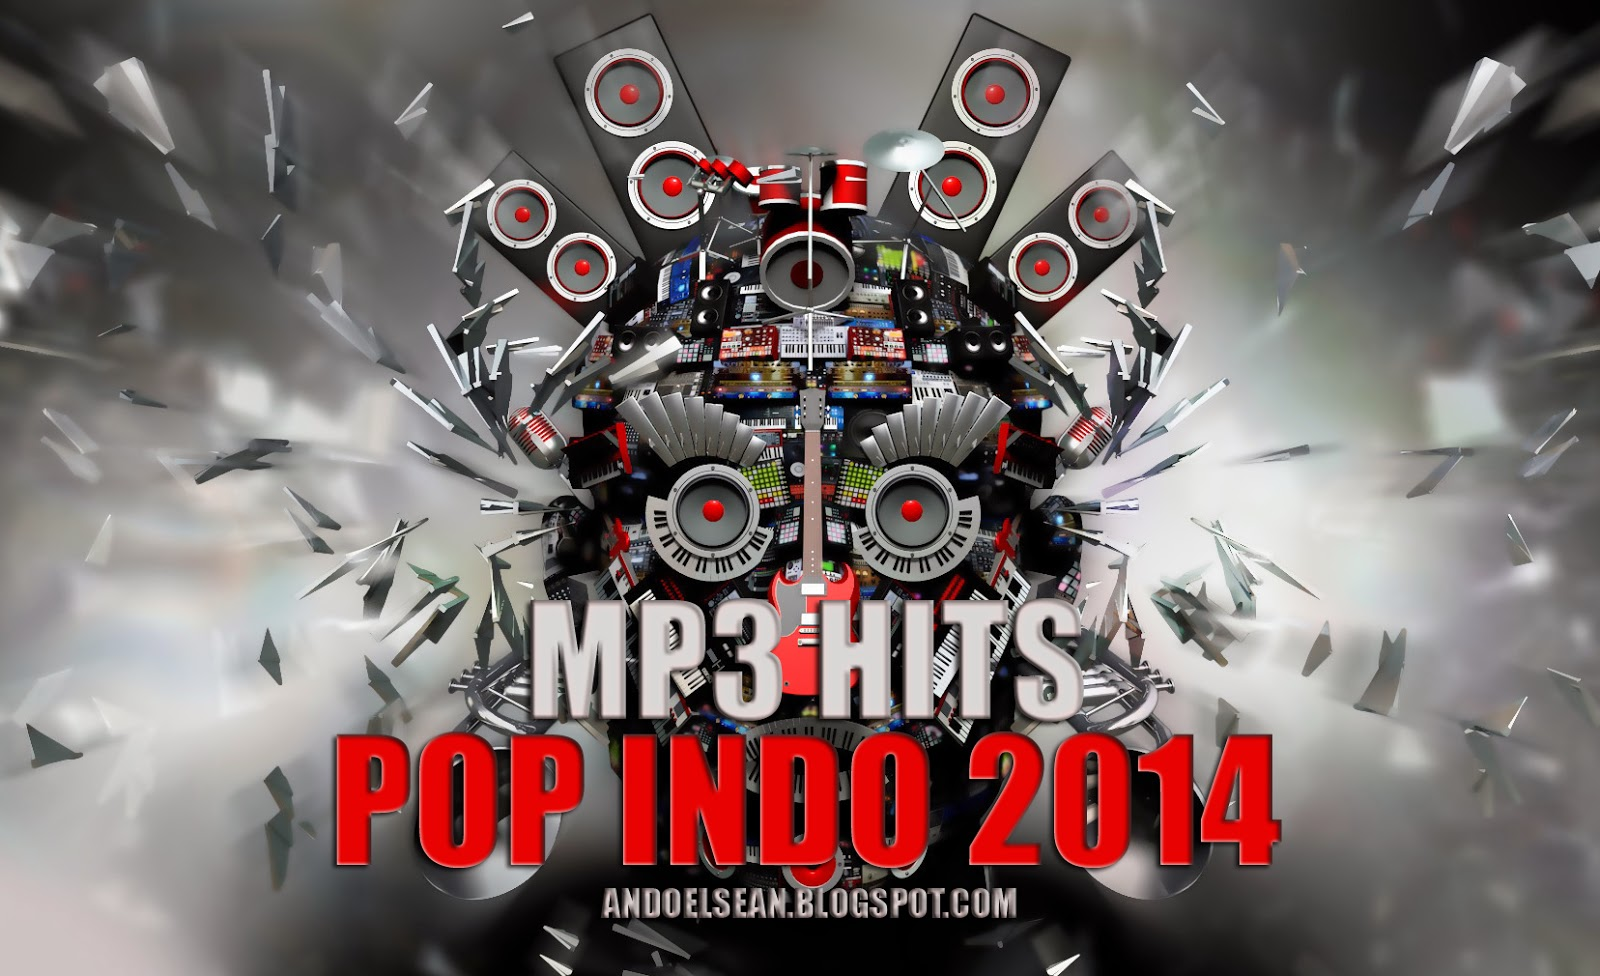 2014 Free Download MP3 Lagu Pop Indonesia Terbaru